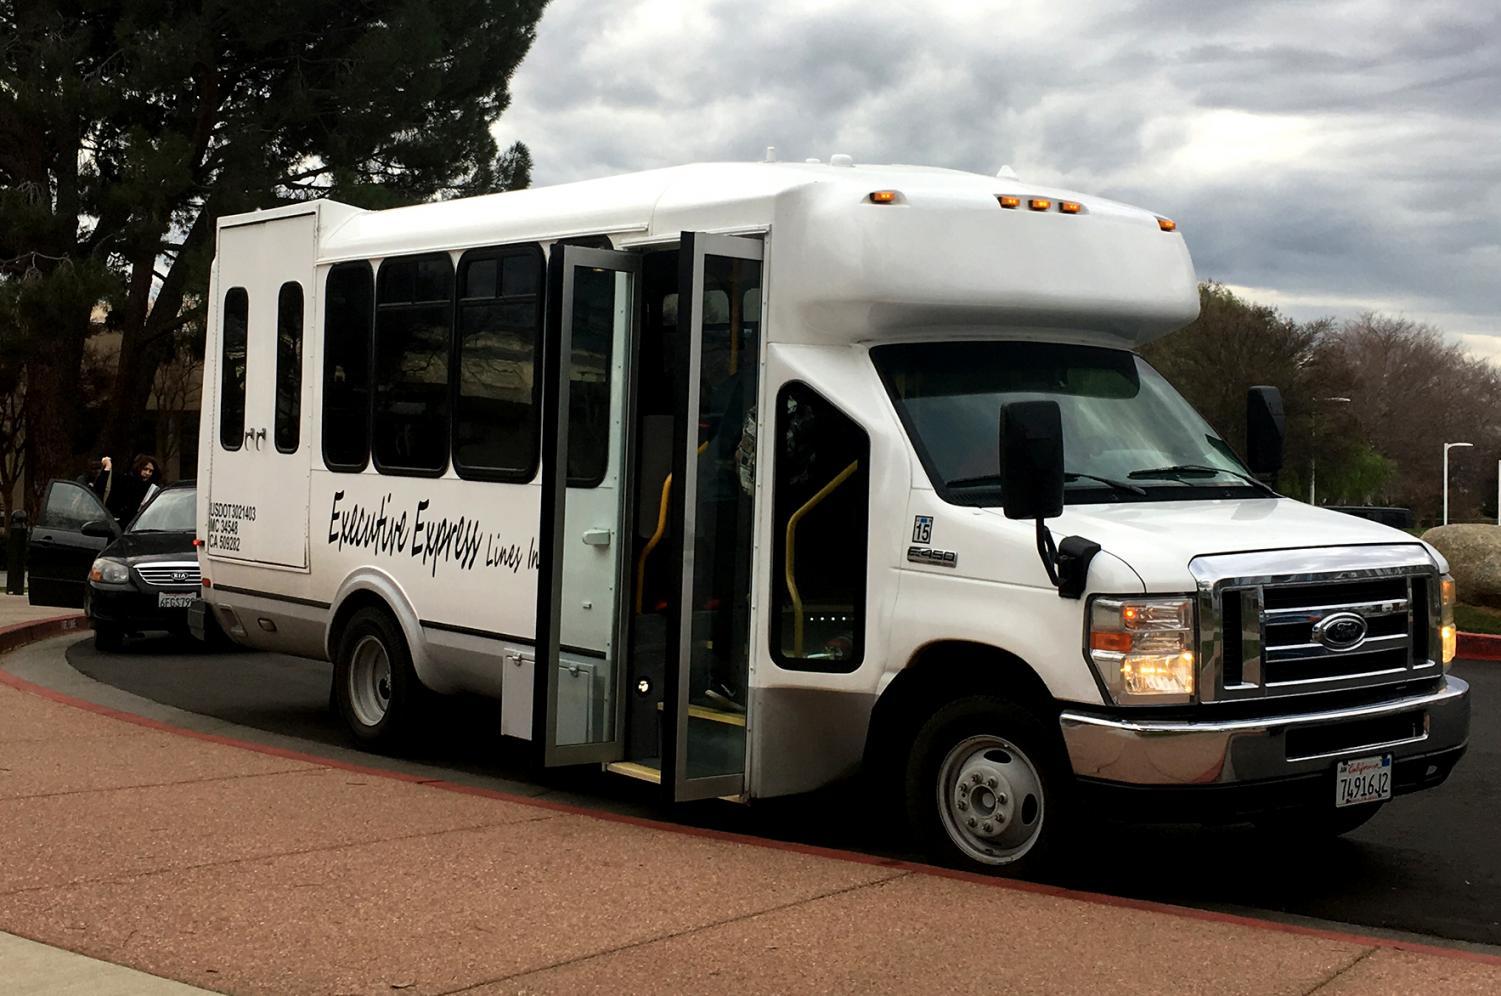 The Renegade Express shuttle waits for riders outside the administration building.